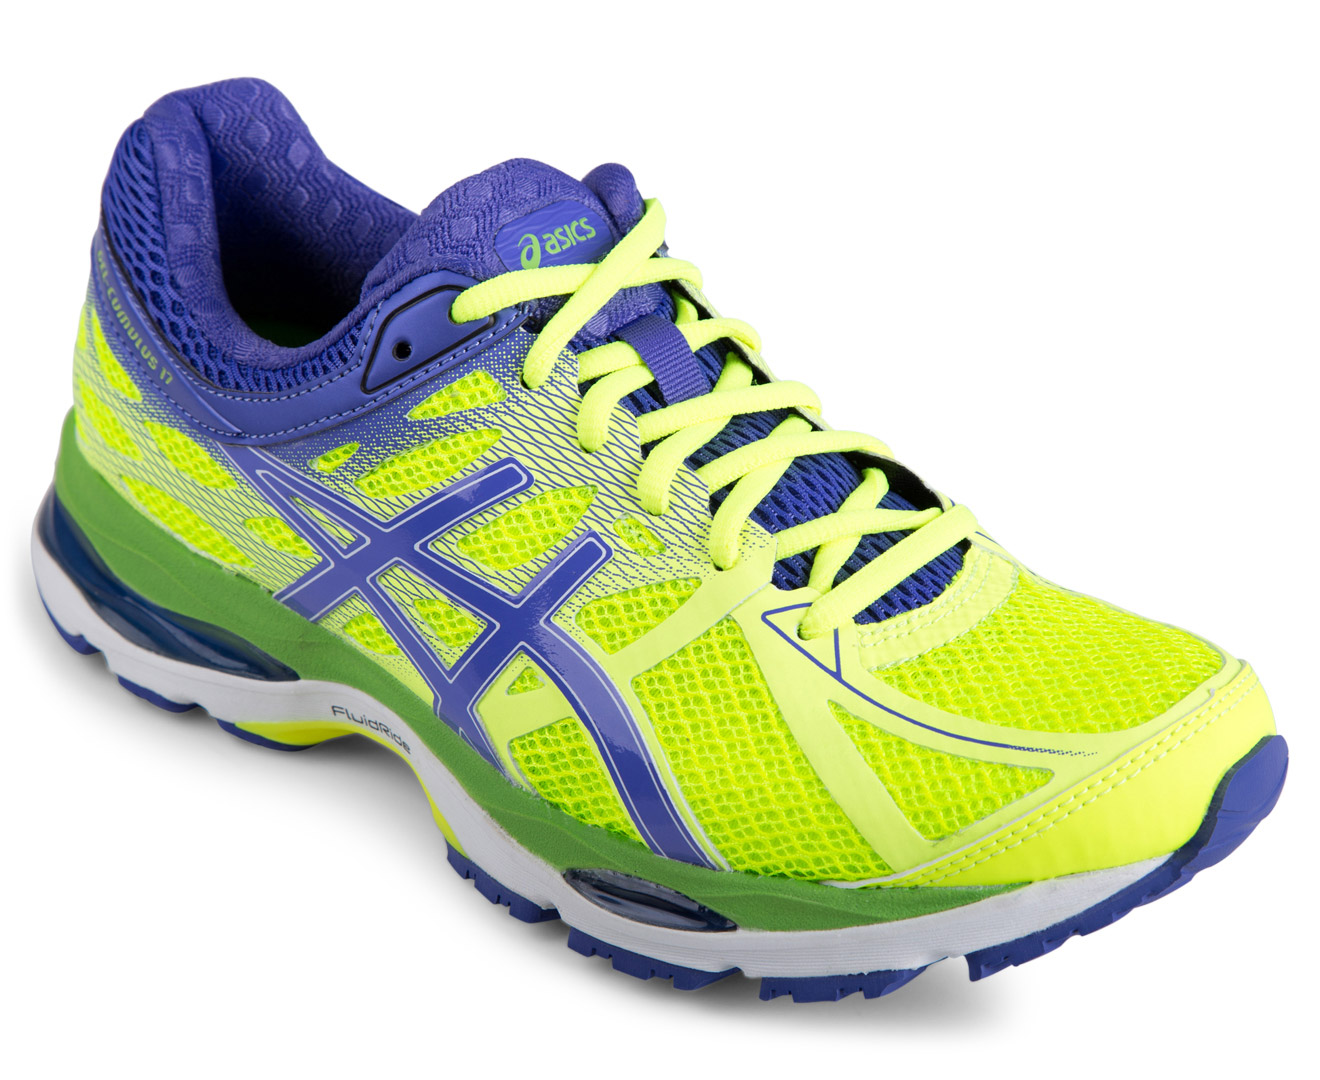 Most Durable Running Shoes Brand